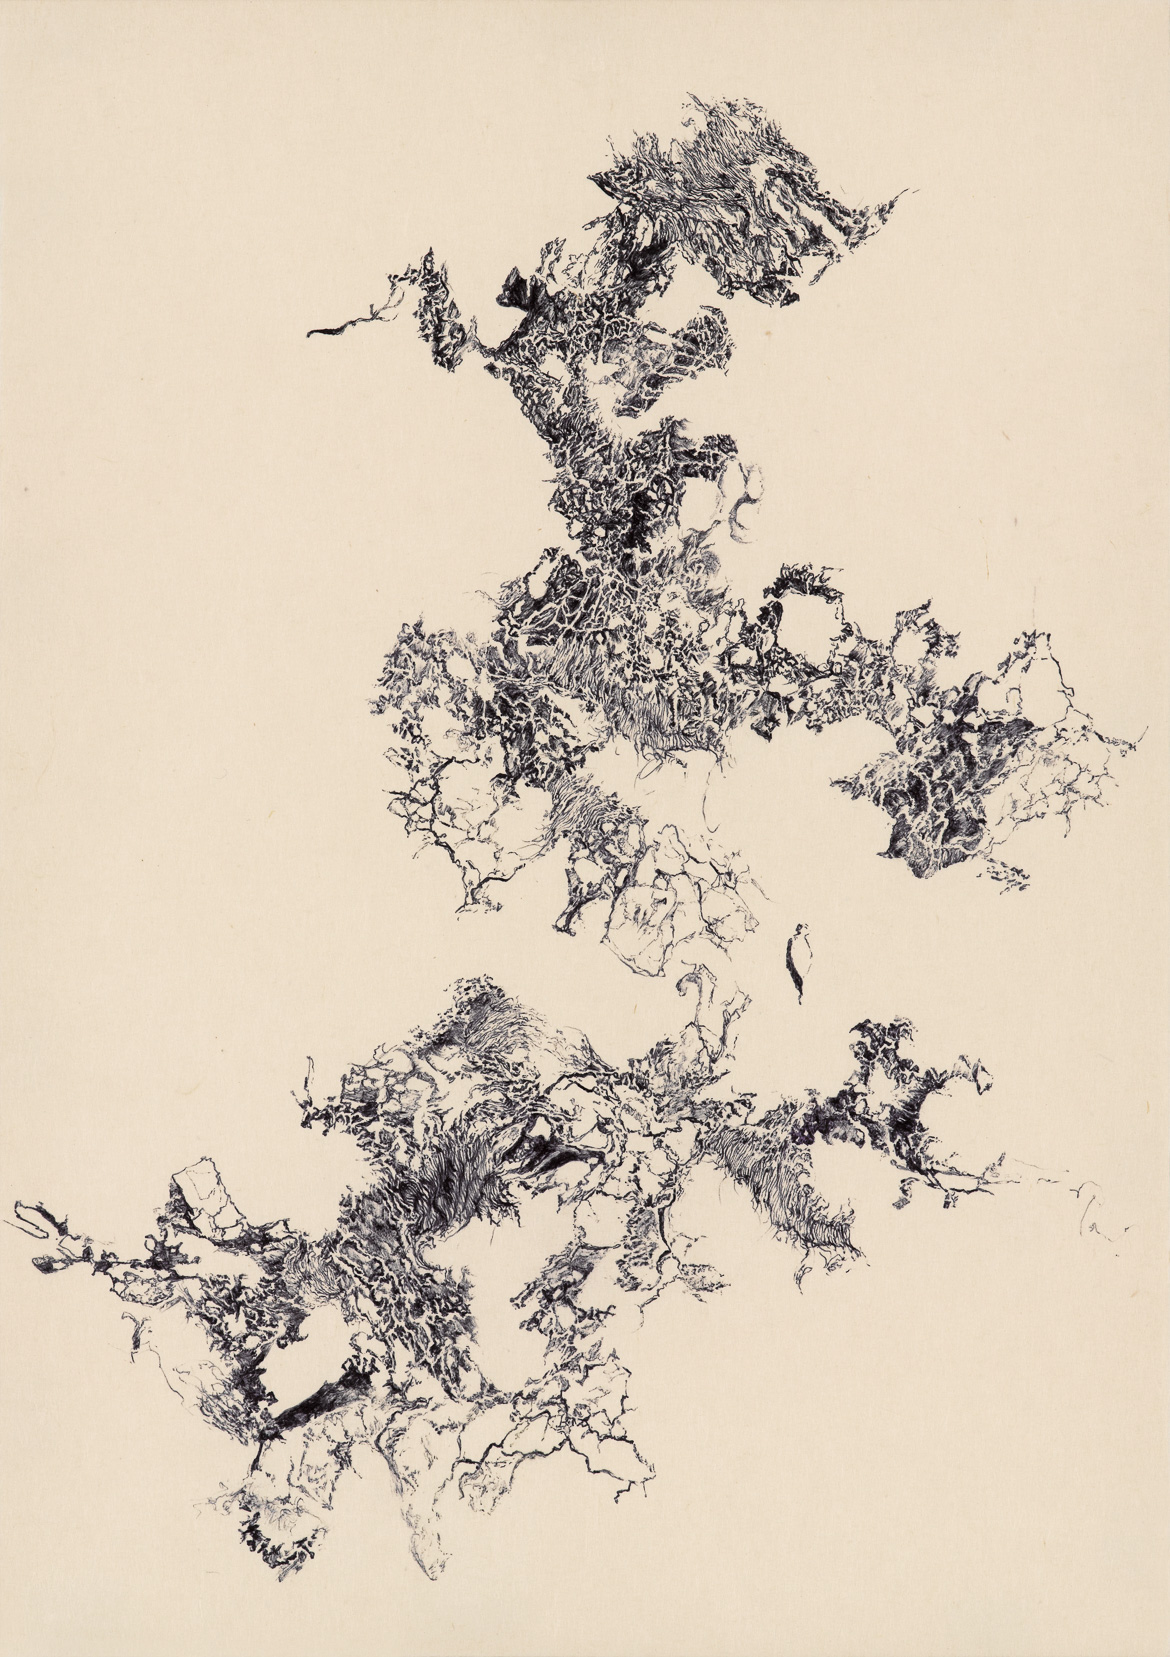 a moment of truth 10, ball pen on paper, 21cm (height) x 29.7cm (width) (A4 size), 2012